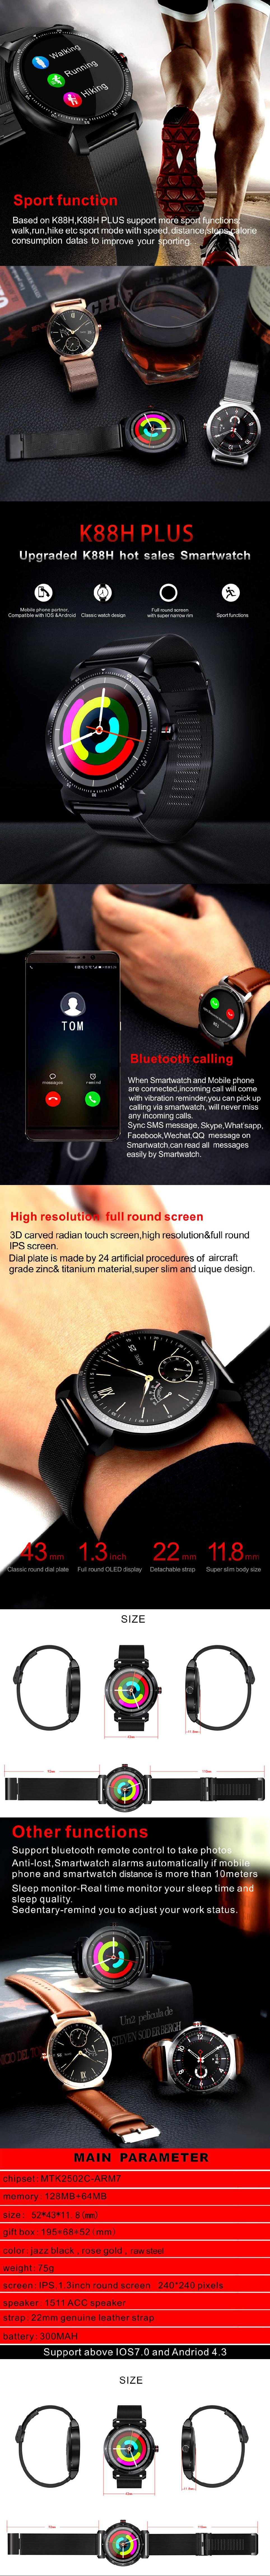 Good Price smart watch red play store package